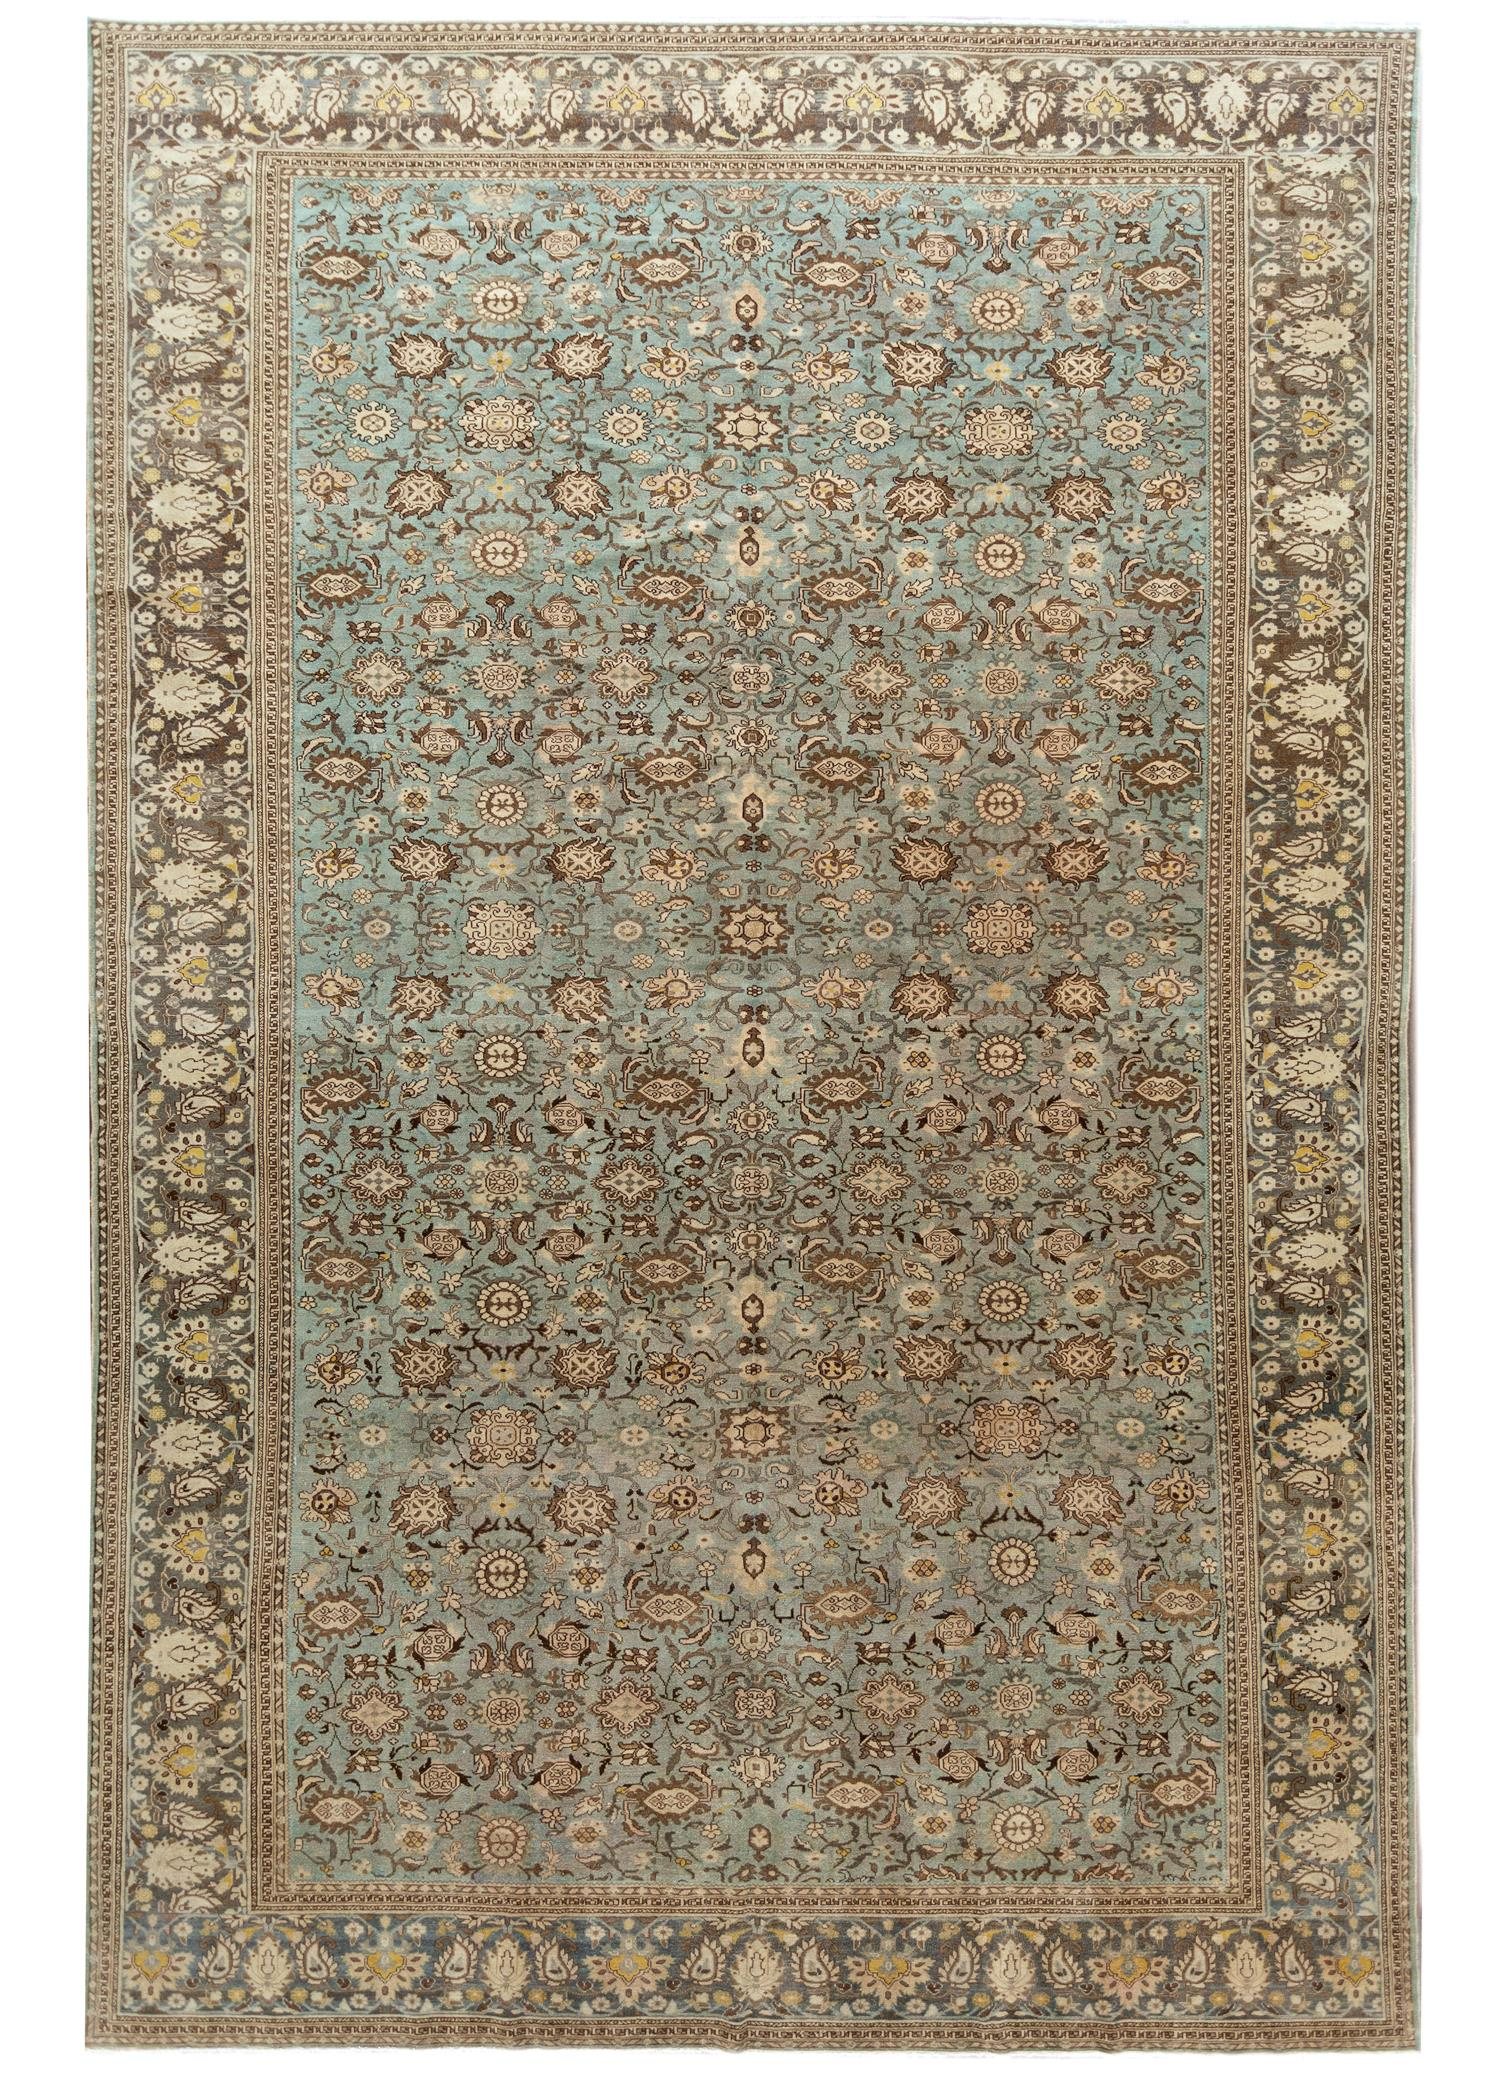 Antique Malayer Rug, #10235250, 12X18